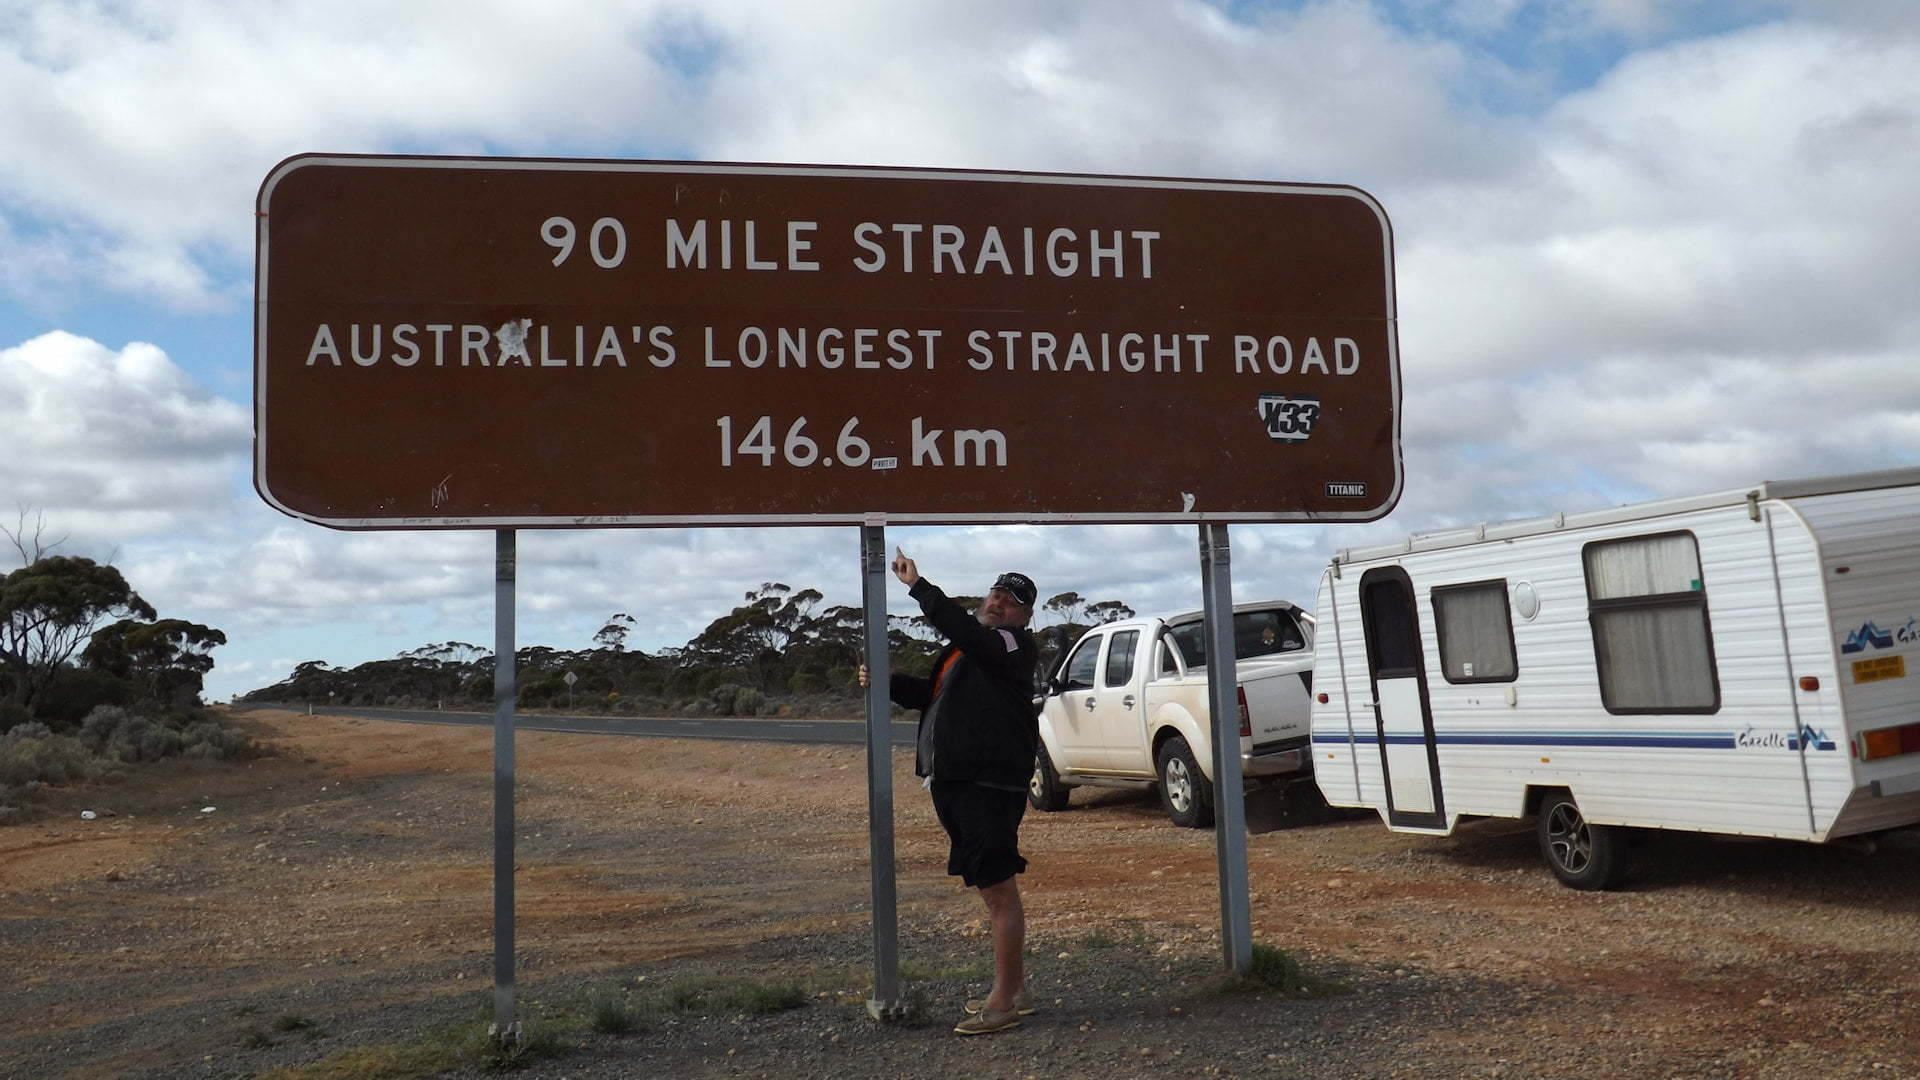 90 Mile Straight, Australia's Longest Straight Road, 146.6km, at the western end at Balladonia Western Australia